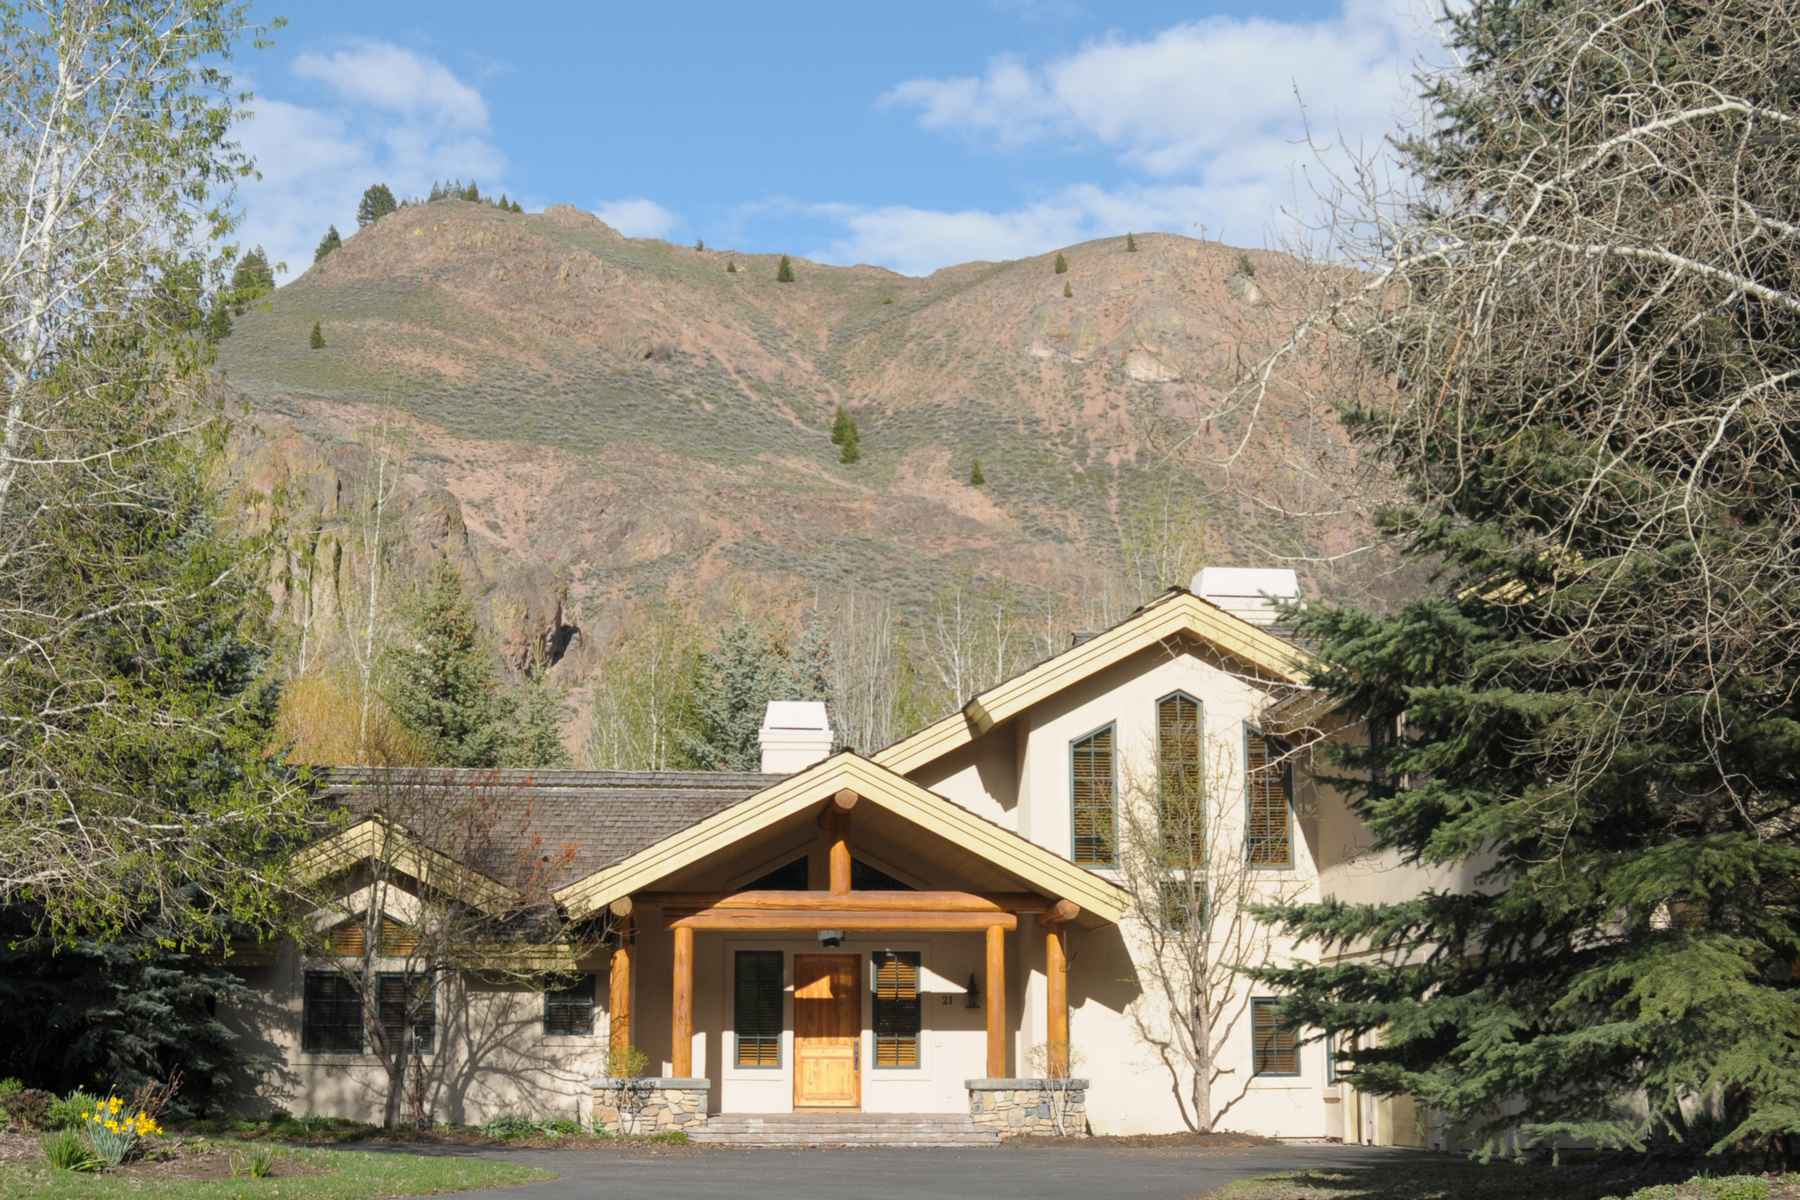 Single Family Home for Sale at Fabulous Lane Ranch Home 21 West Lane Ranch Rd Sun Valley, Idaho, 83353 United States